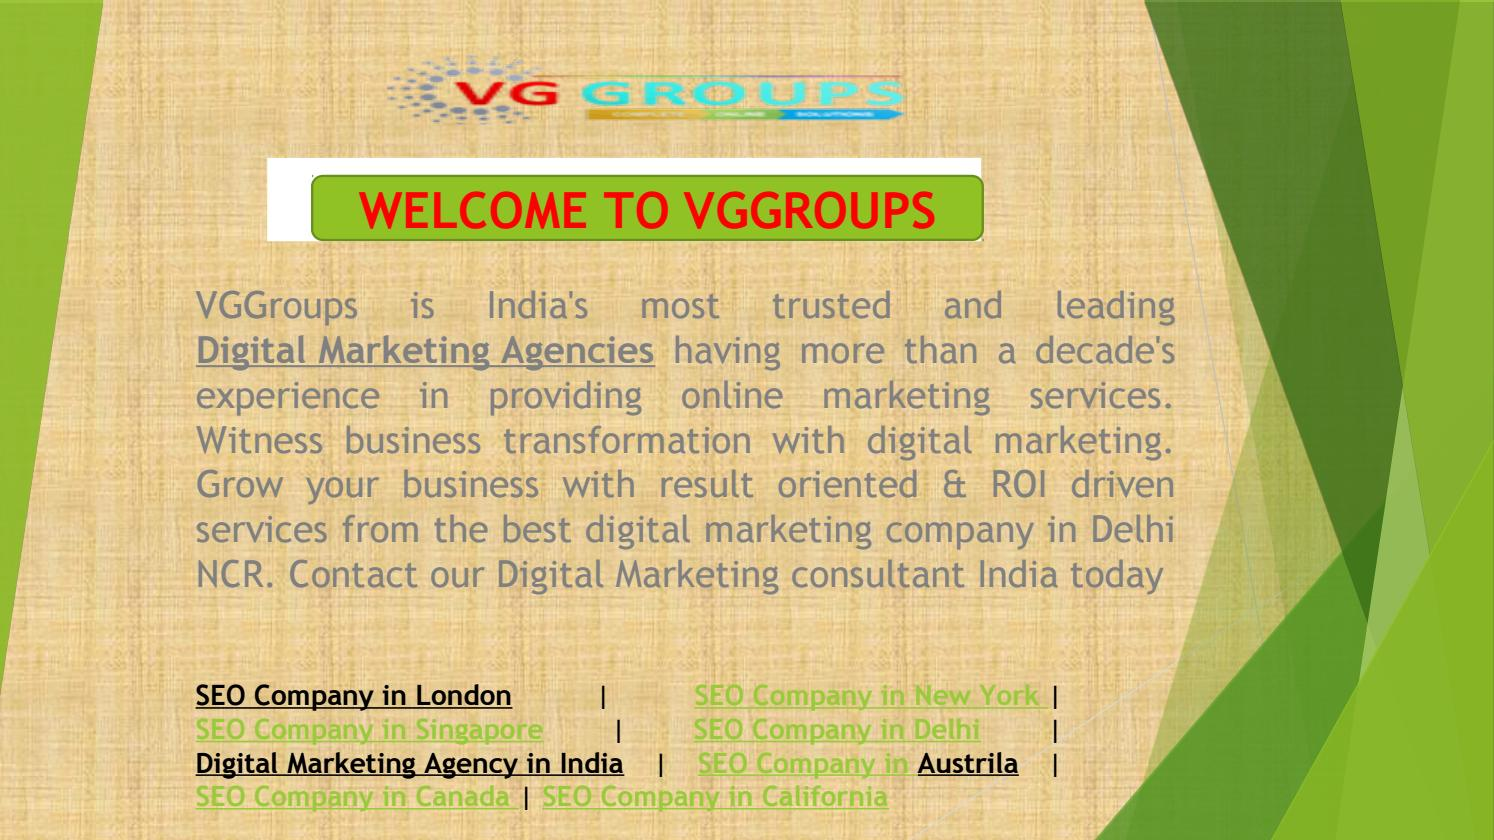 Best Digital Marketing Company and SEO Company in London by